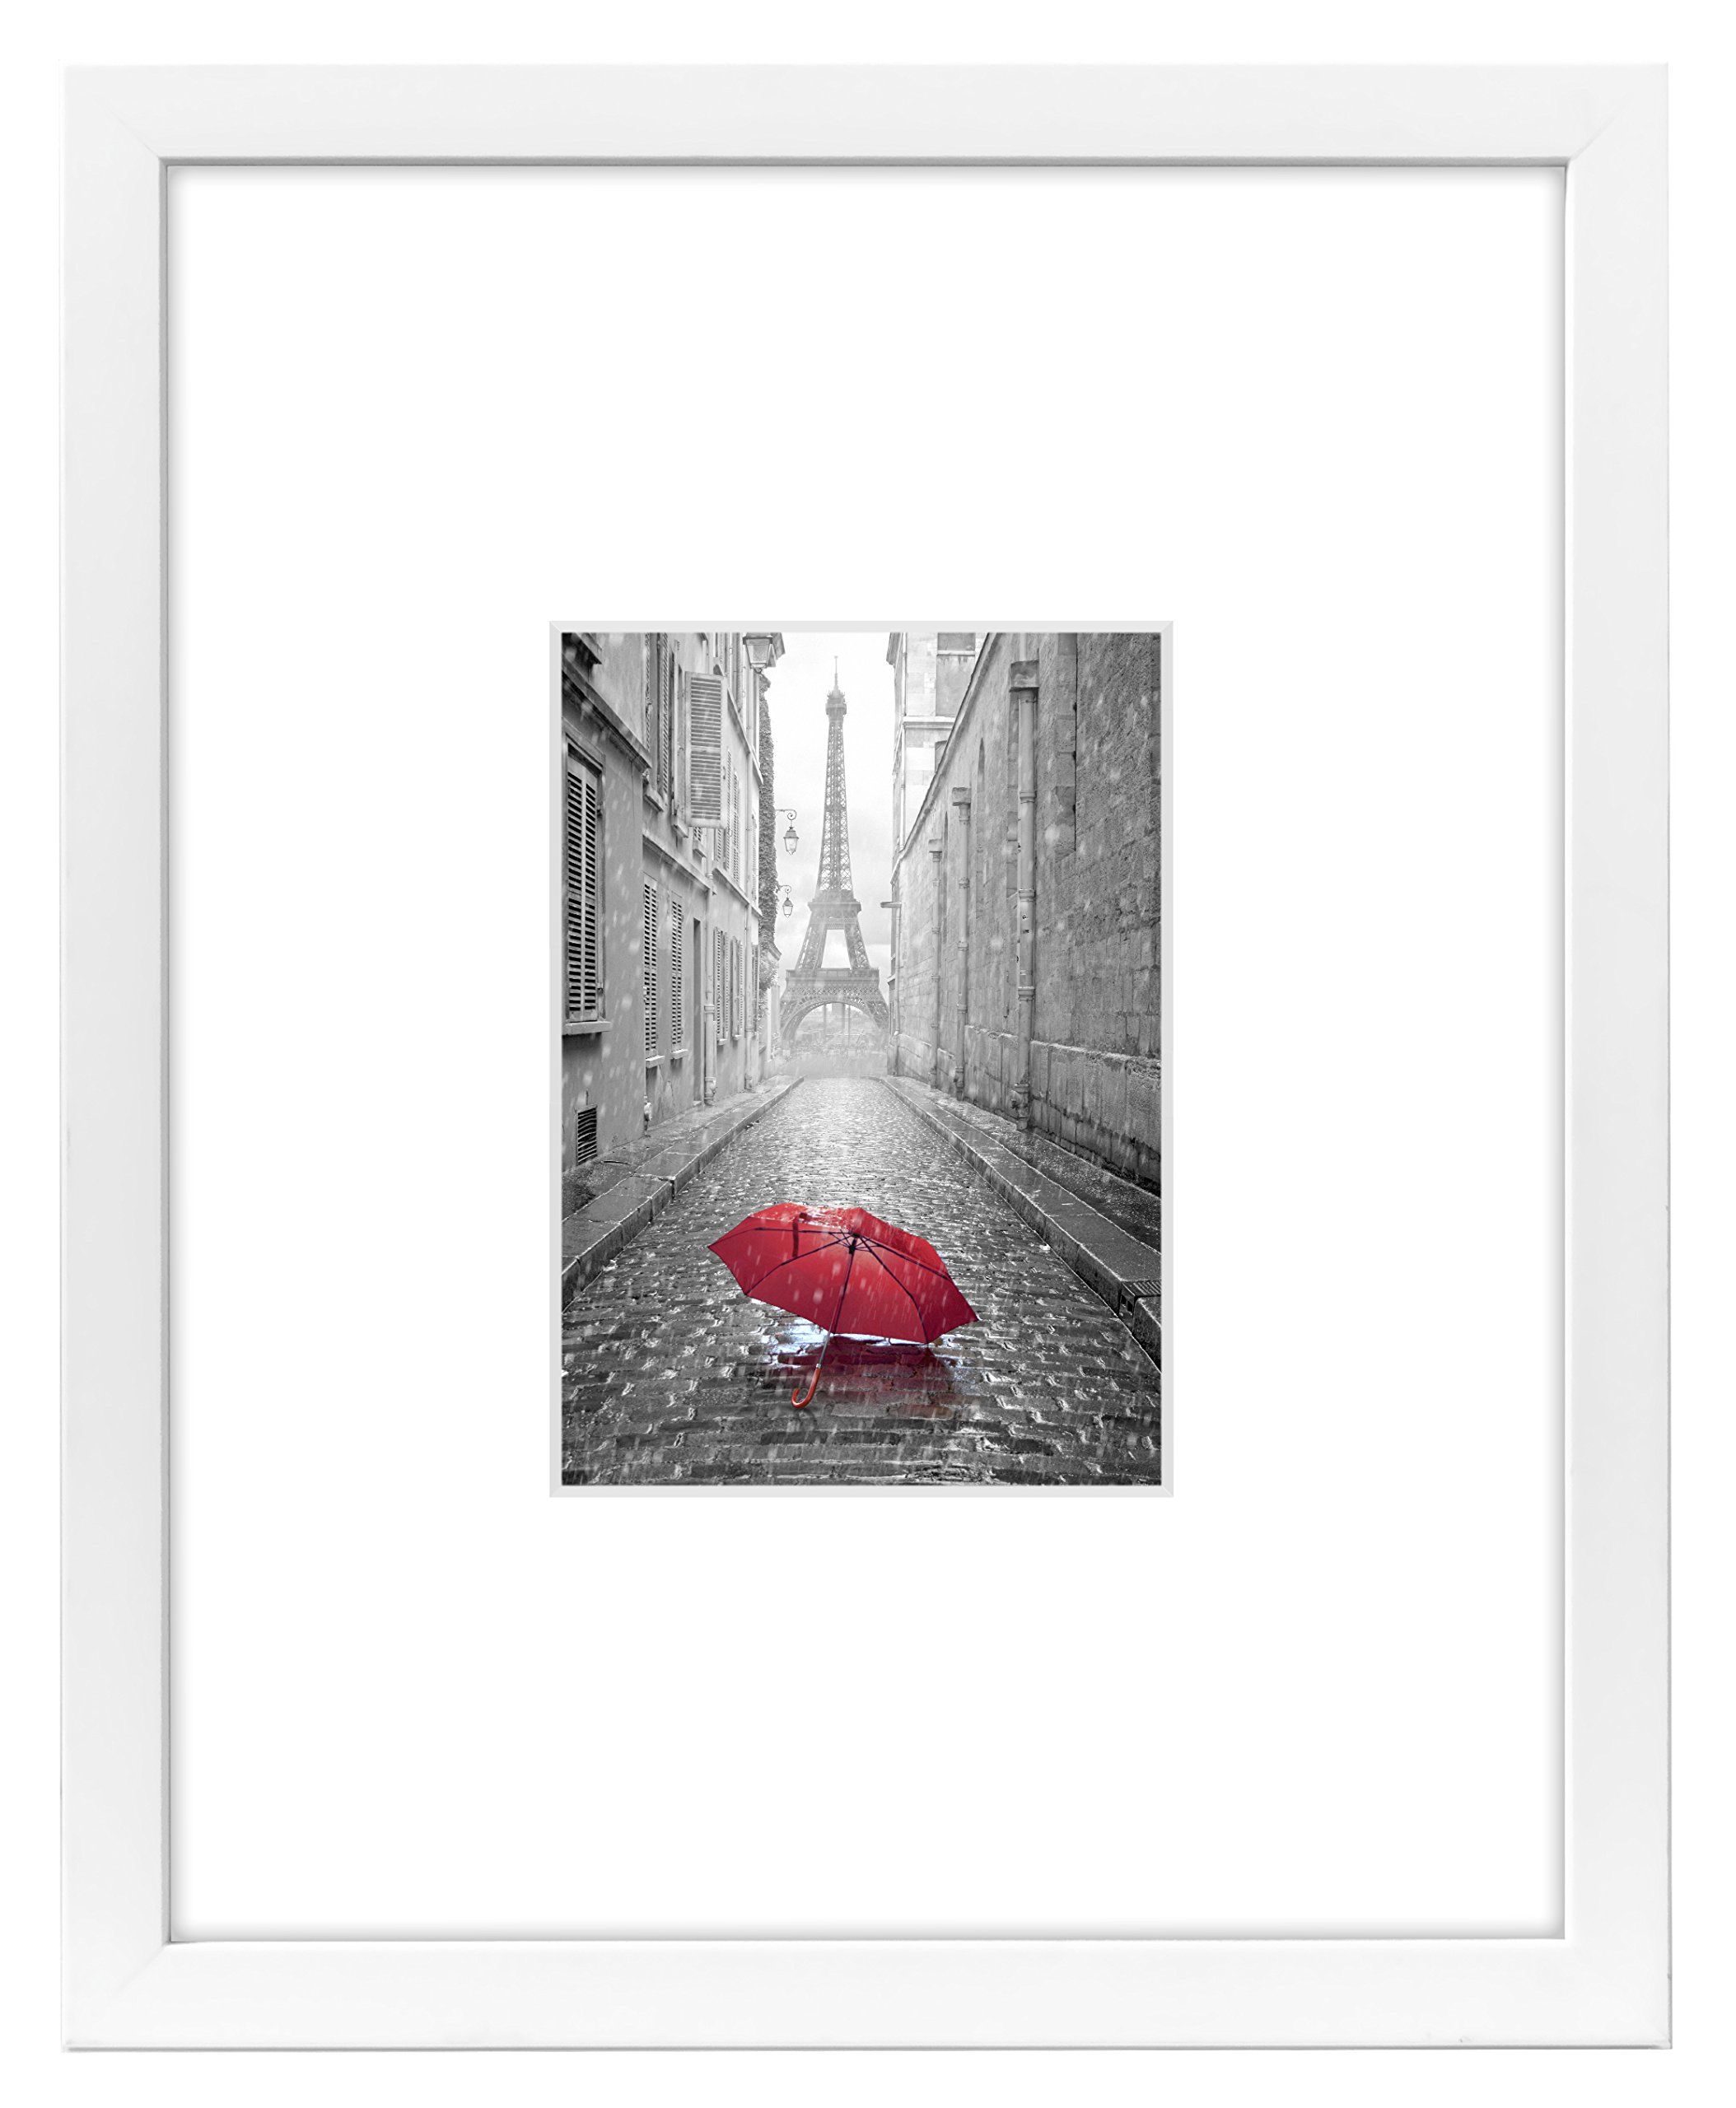 Americanflat 11x14 White Picture Frame - Display Pictures 5x7 with Mat - Display Pictures 11x14 Without Mat - White Mat - Glass Front by Americanflat